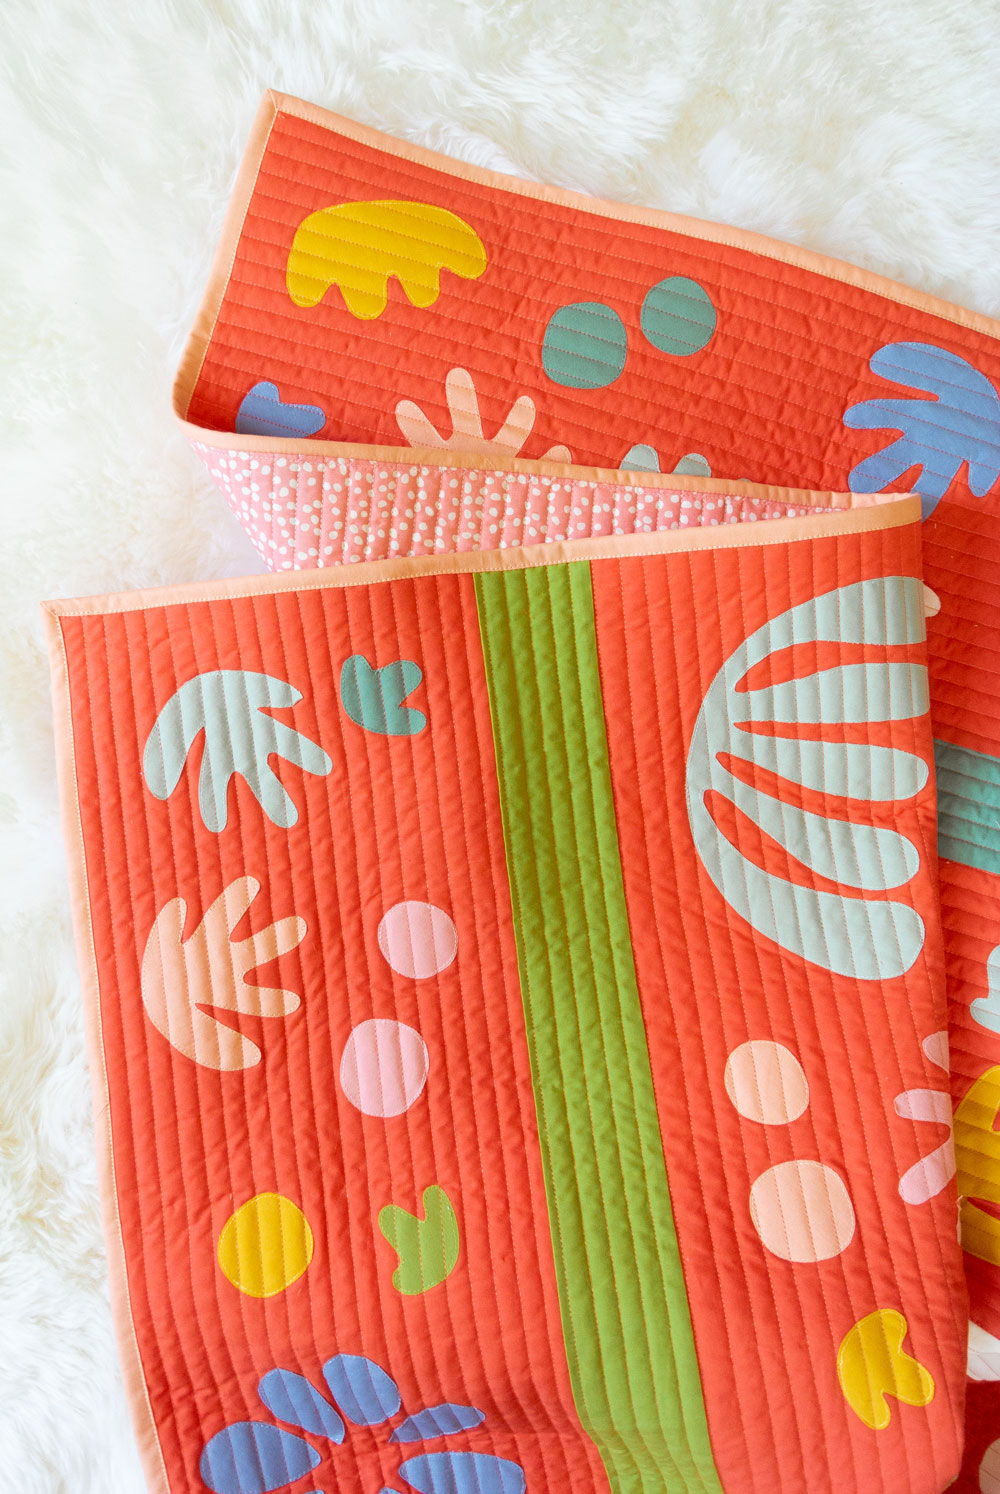 The Bohemian Garden quilt pattern includes a raw-edge applique step-by-step tutorial